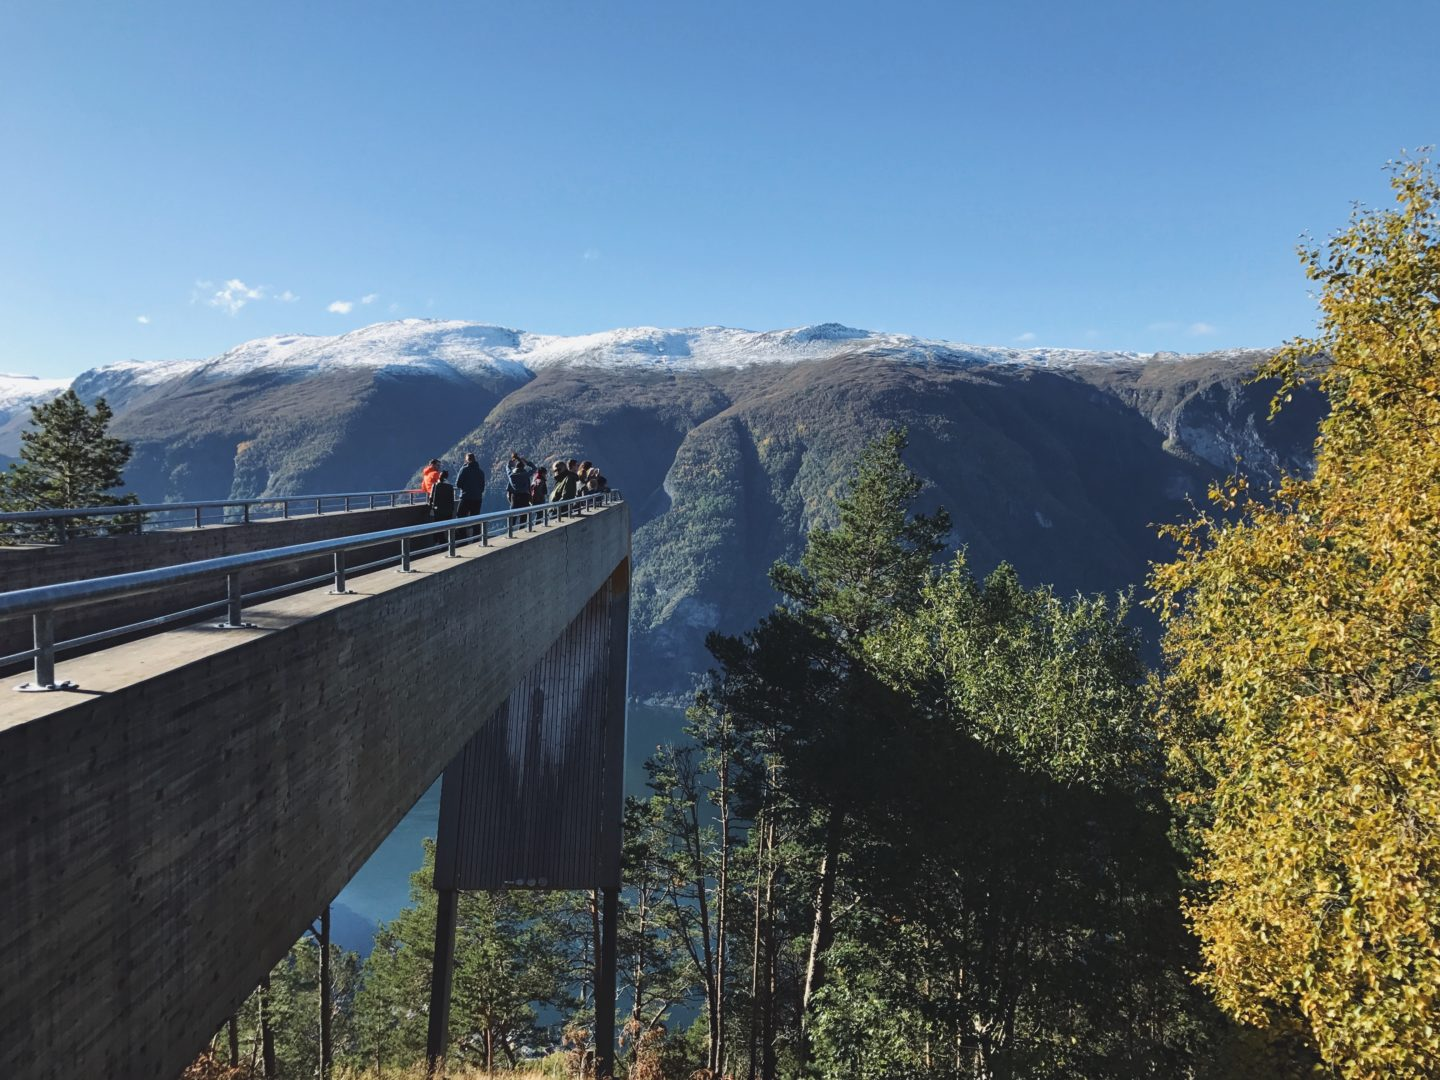 Stegastein lookout and viewing platform, norway